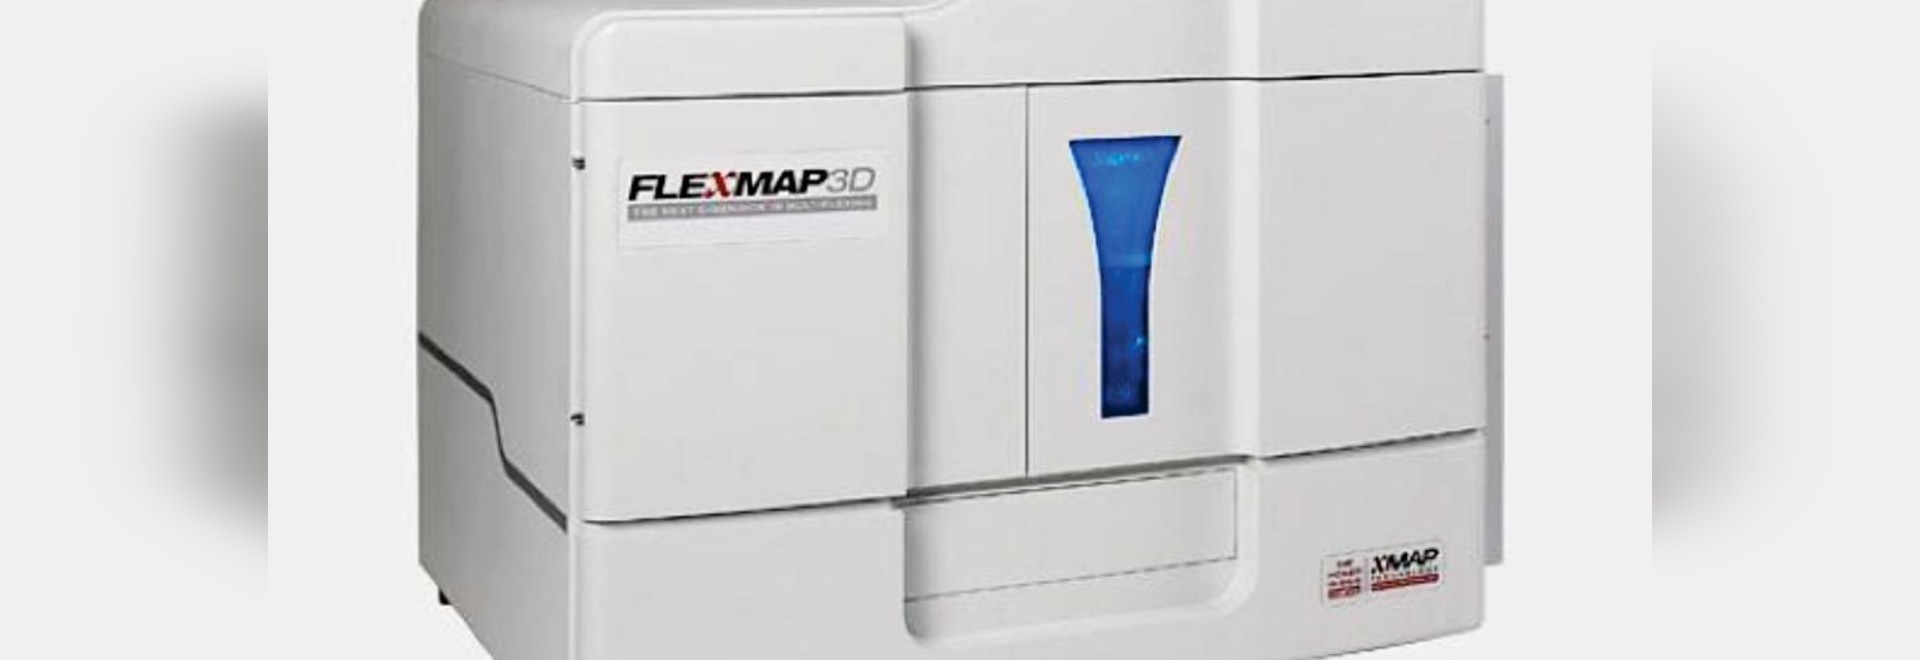 Image: The FLEXMAP 3D instrument is an advanced and versatile multiplexing platform. The platform uses both magnetic and non-magnetic microspheres and is capable of simultaneously measuring up to 5...